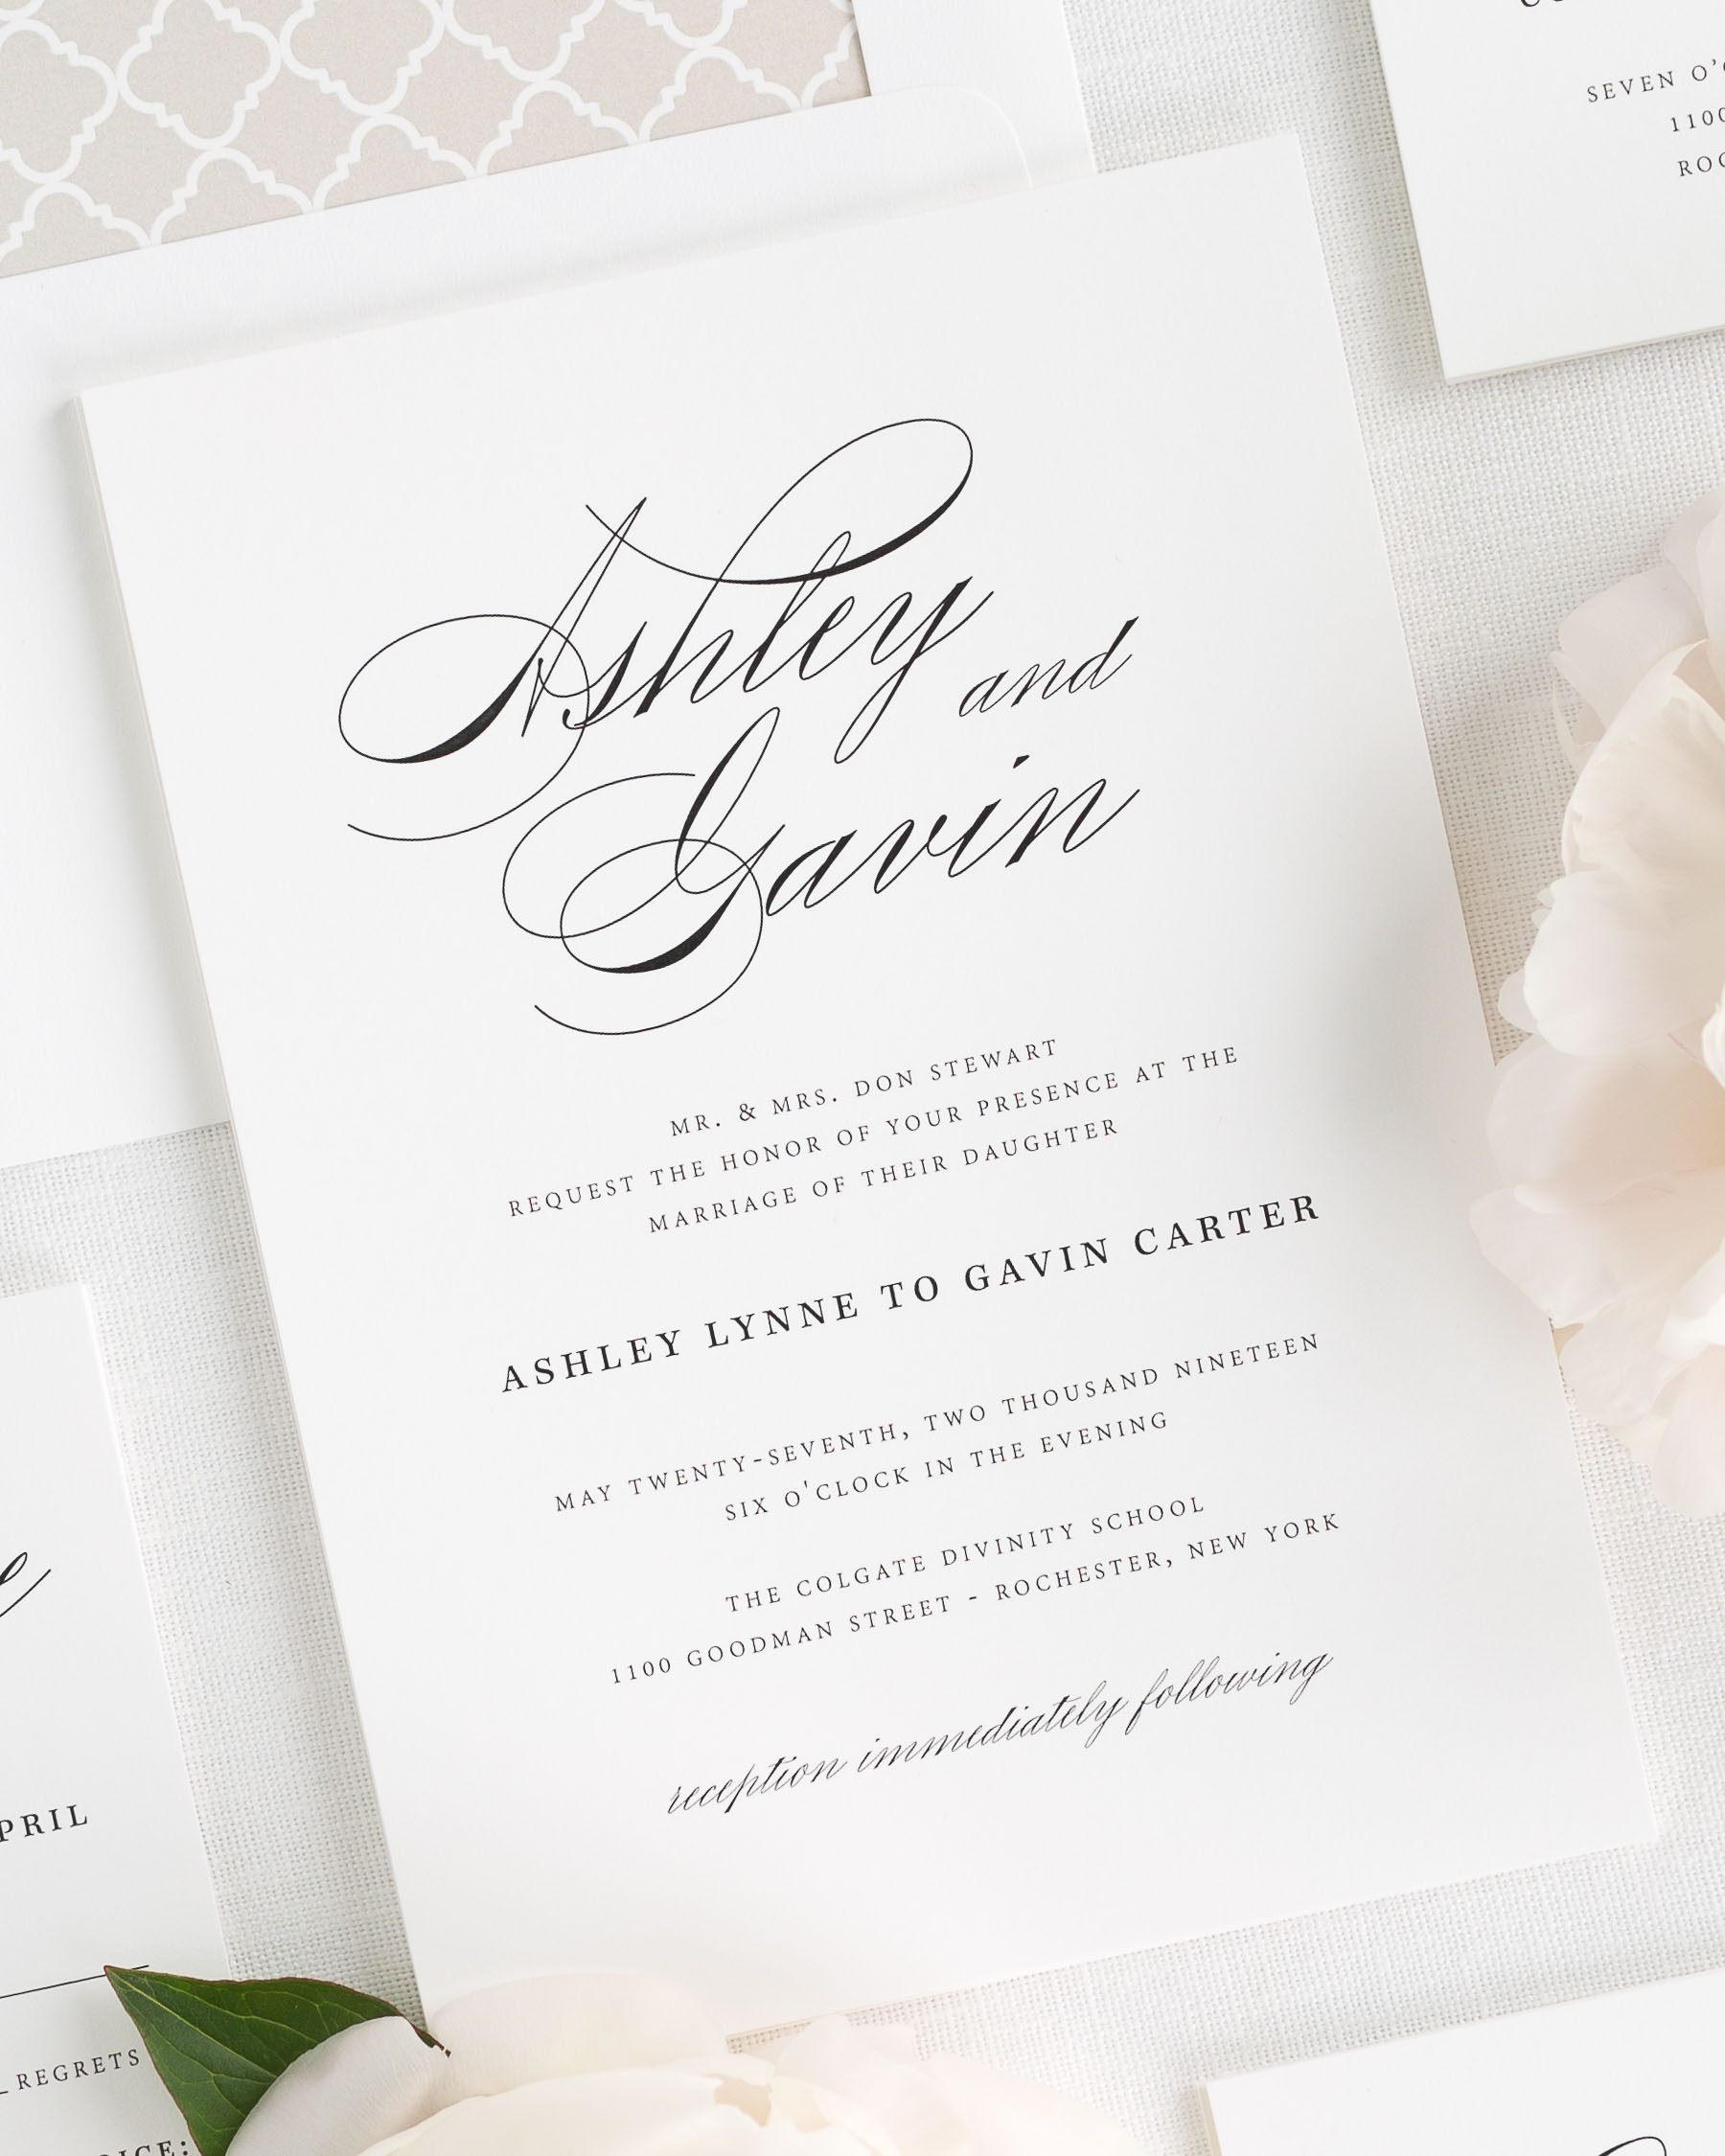 Samples Of Wedding Invites: Timeless Script Wedding Invitations